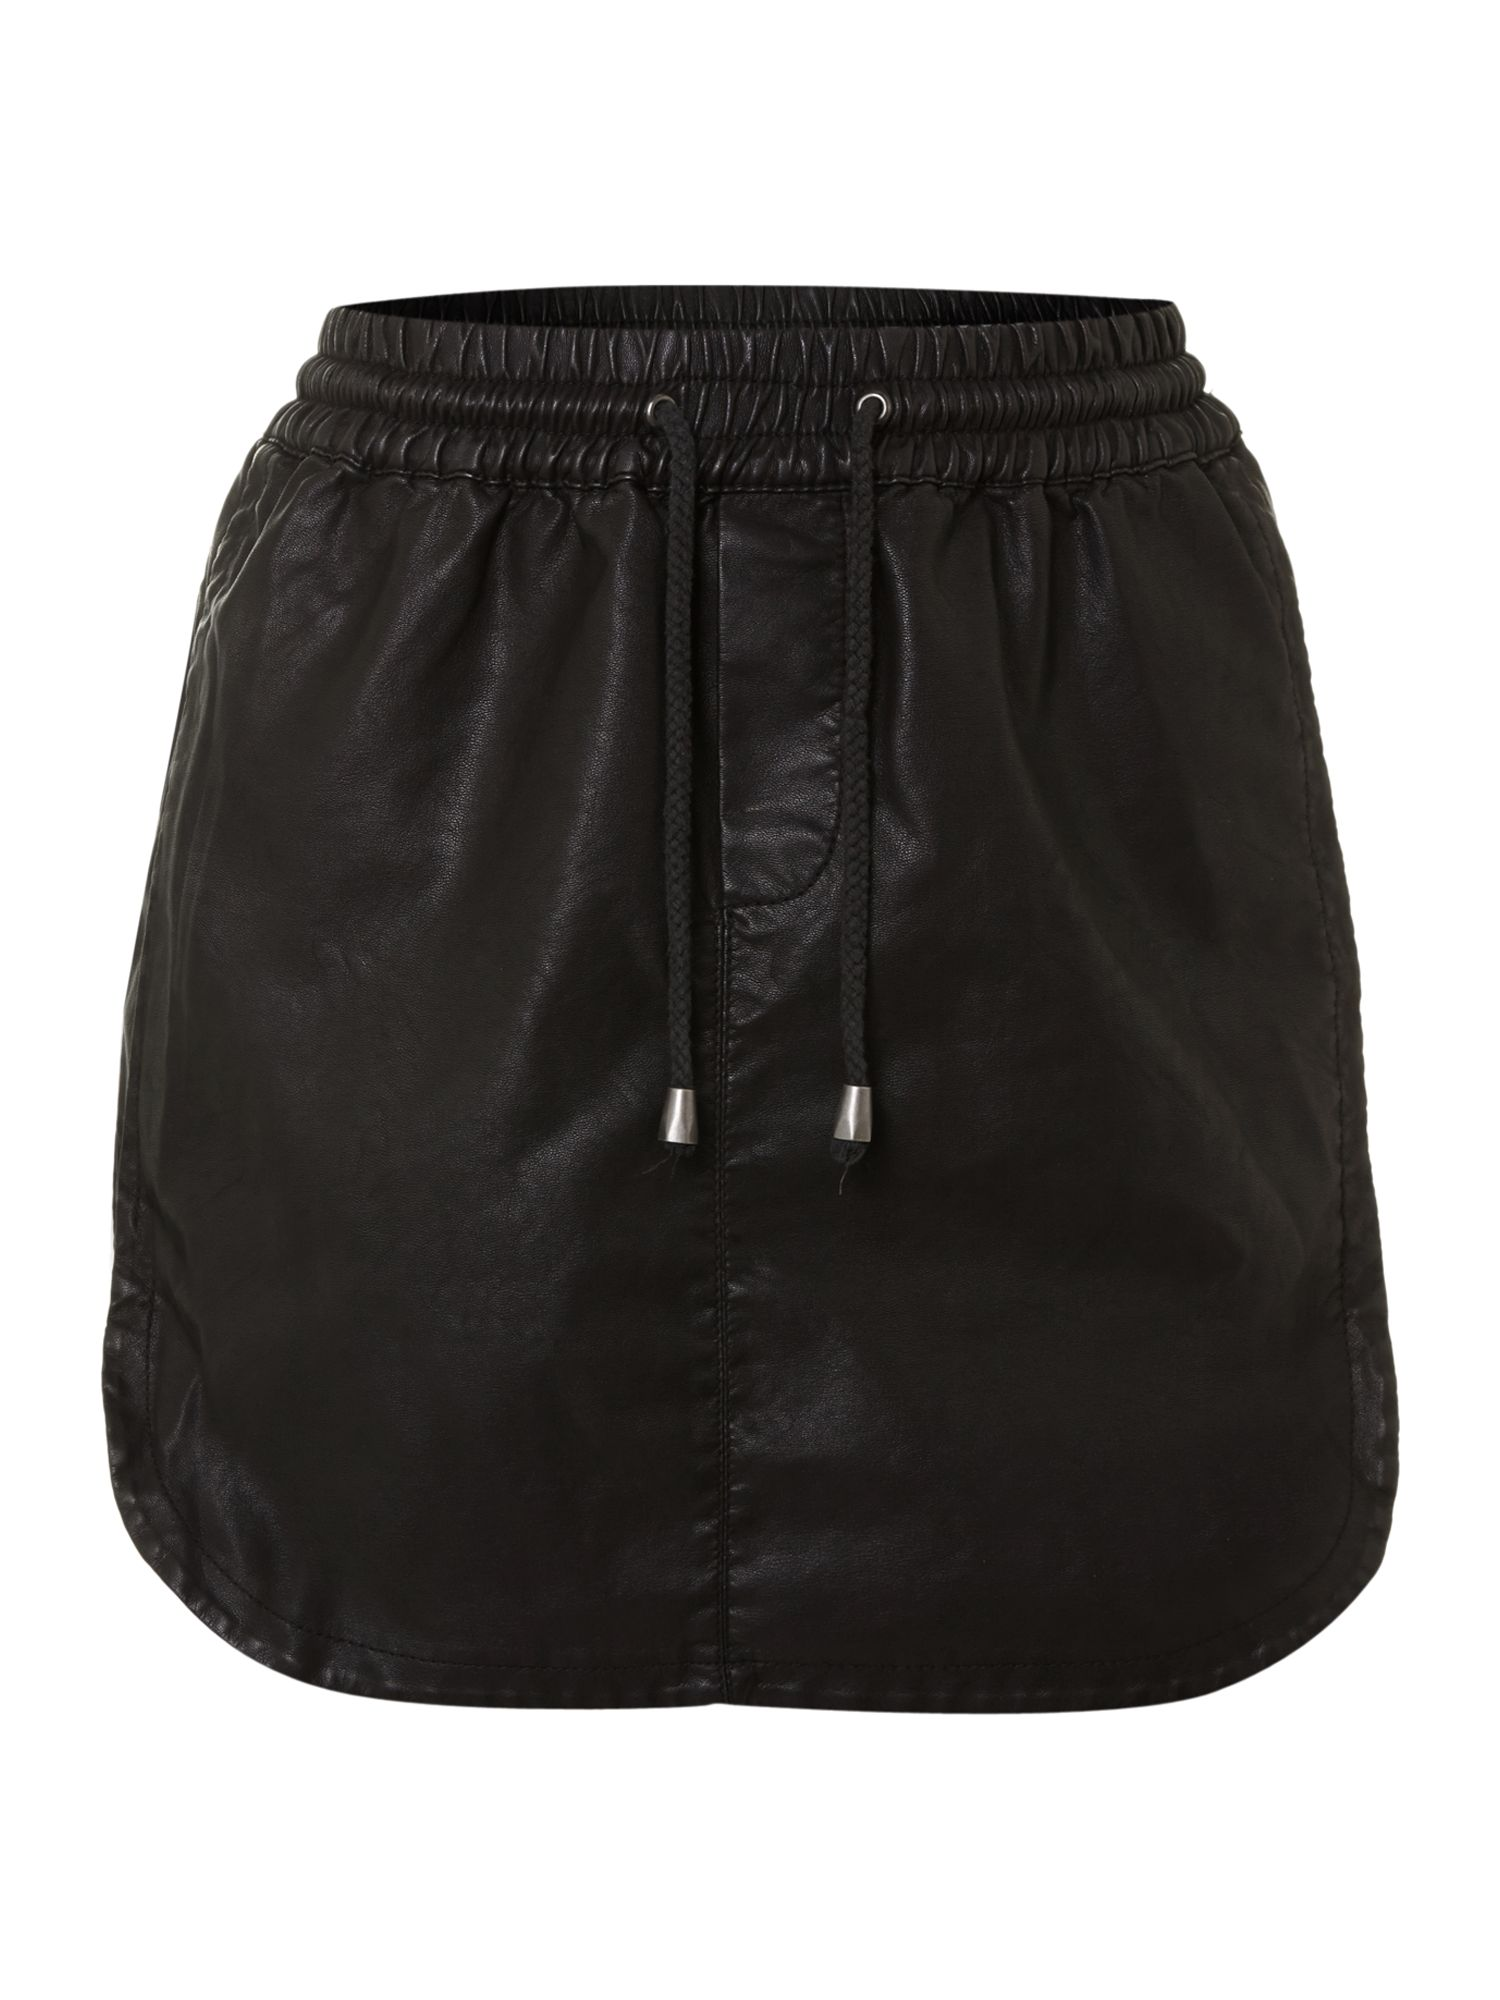 PU drawstring skirt